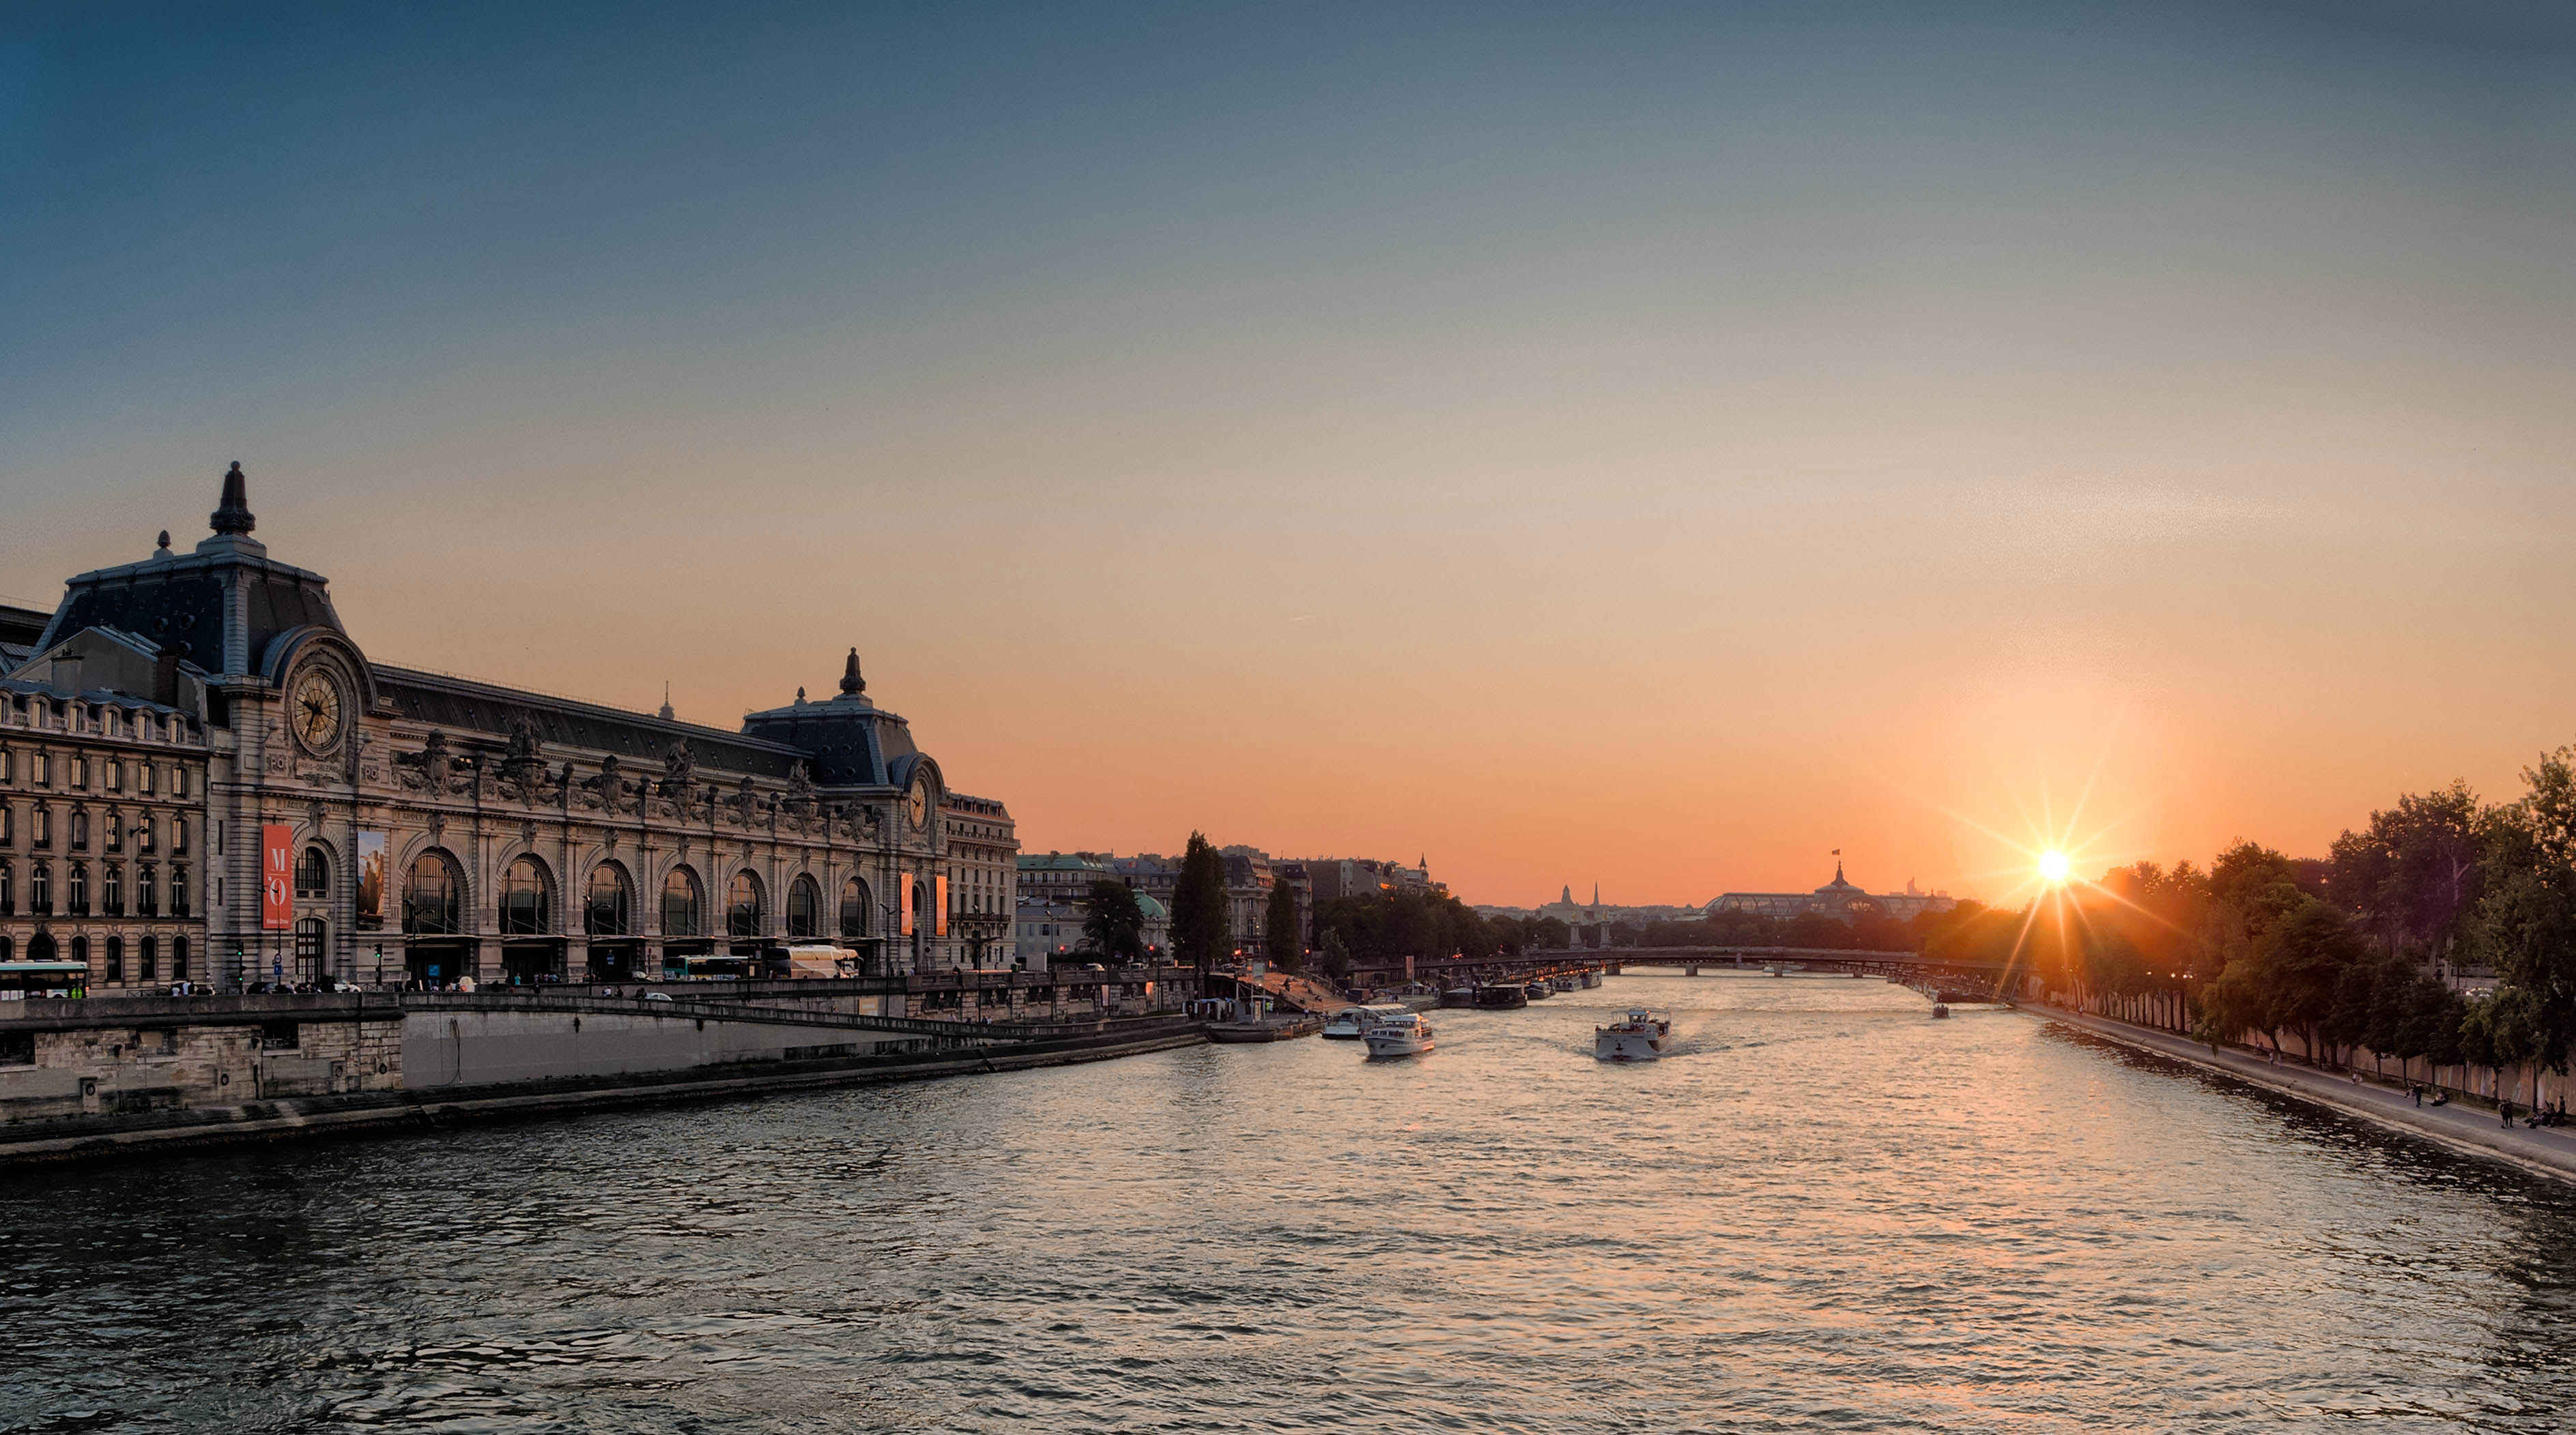 Love U So Much Quotes Wallpaper Sunset On The Seine In Paris France Image Free Stock